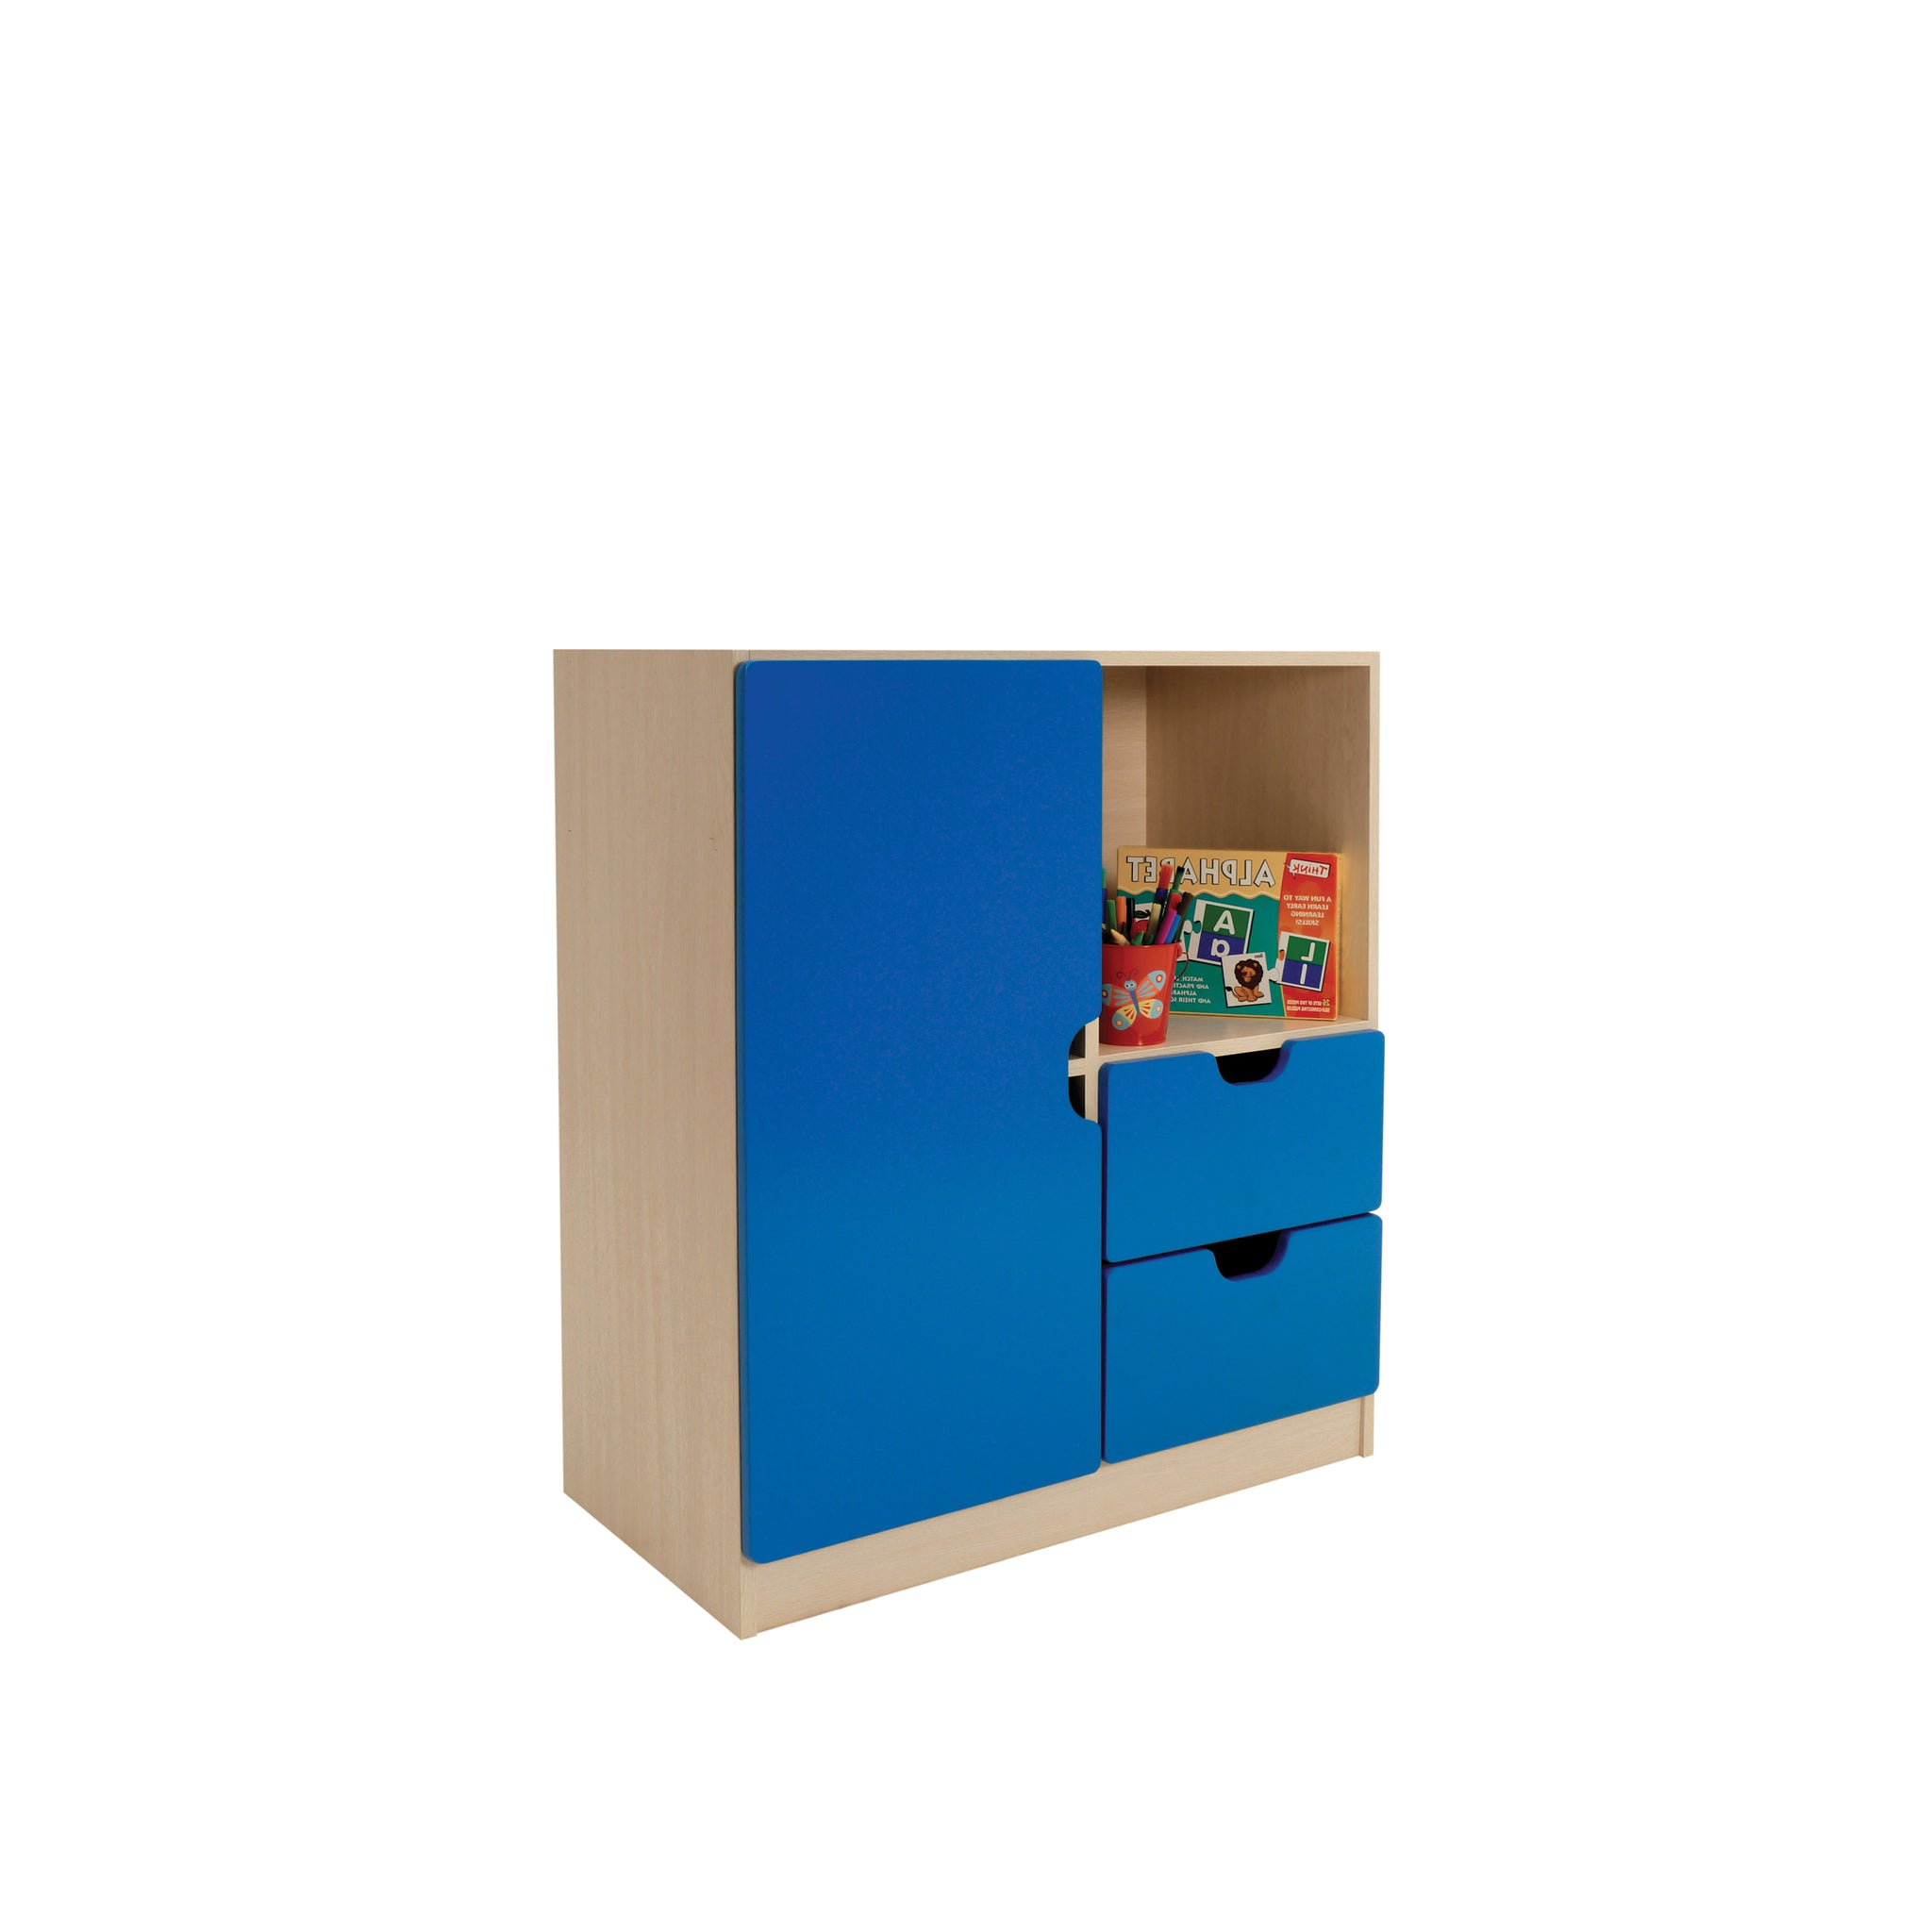 Hedcor 4 Compartment school storage unit